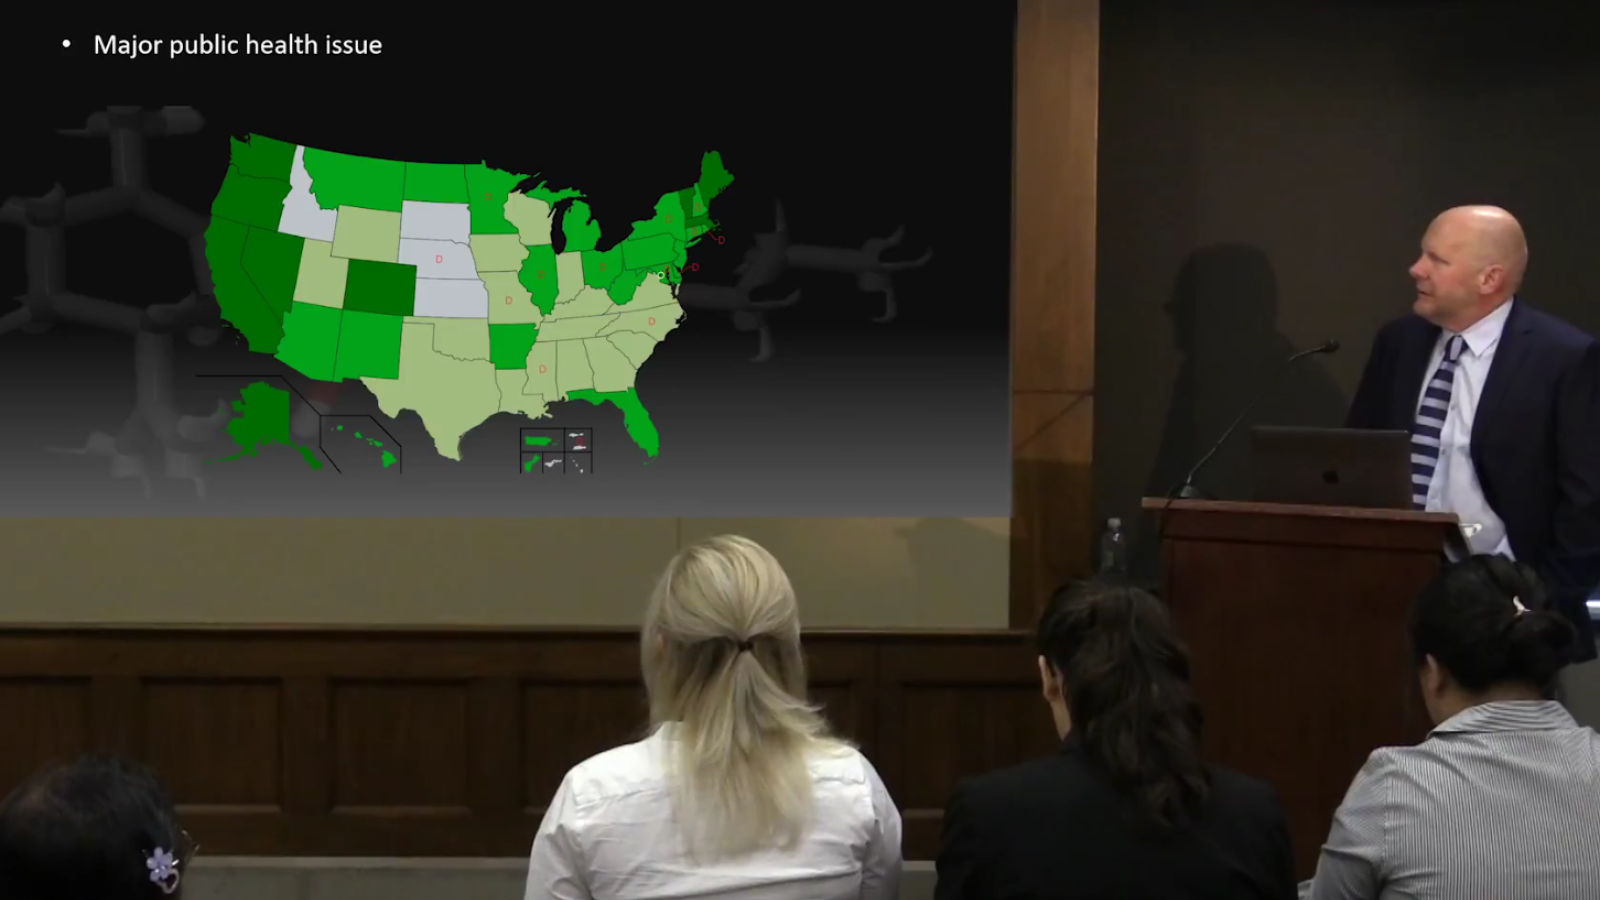 Kent Hutchison and map coded by cannabis legality status